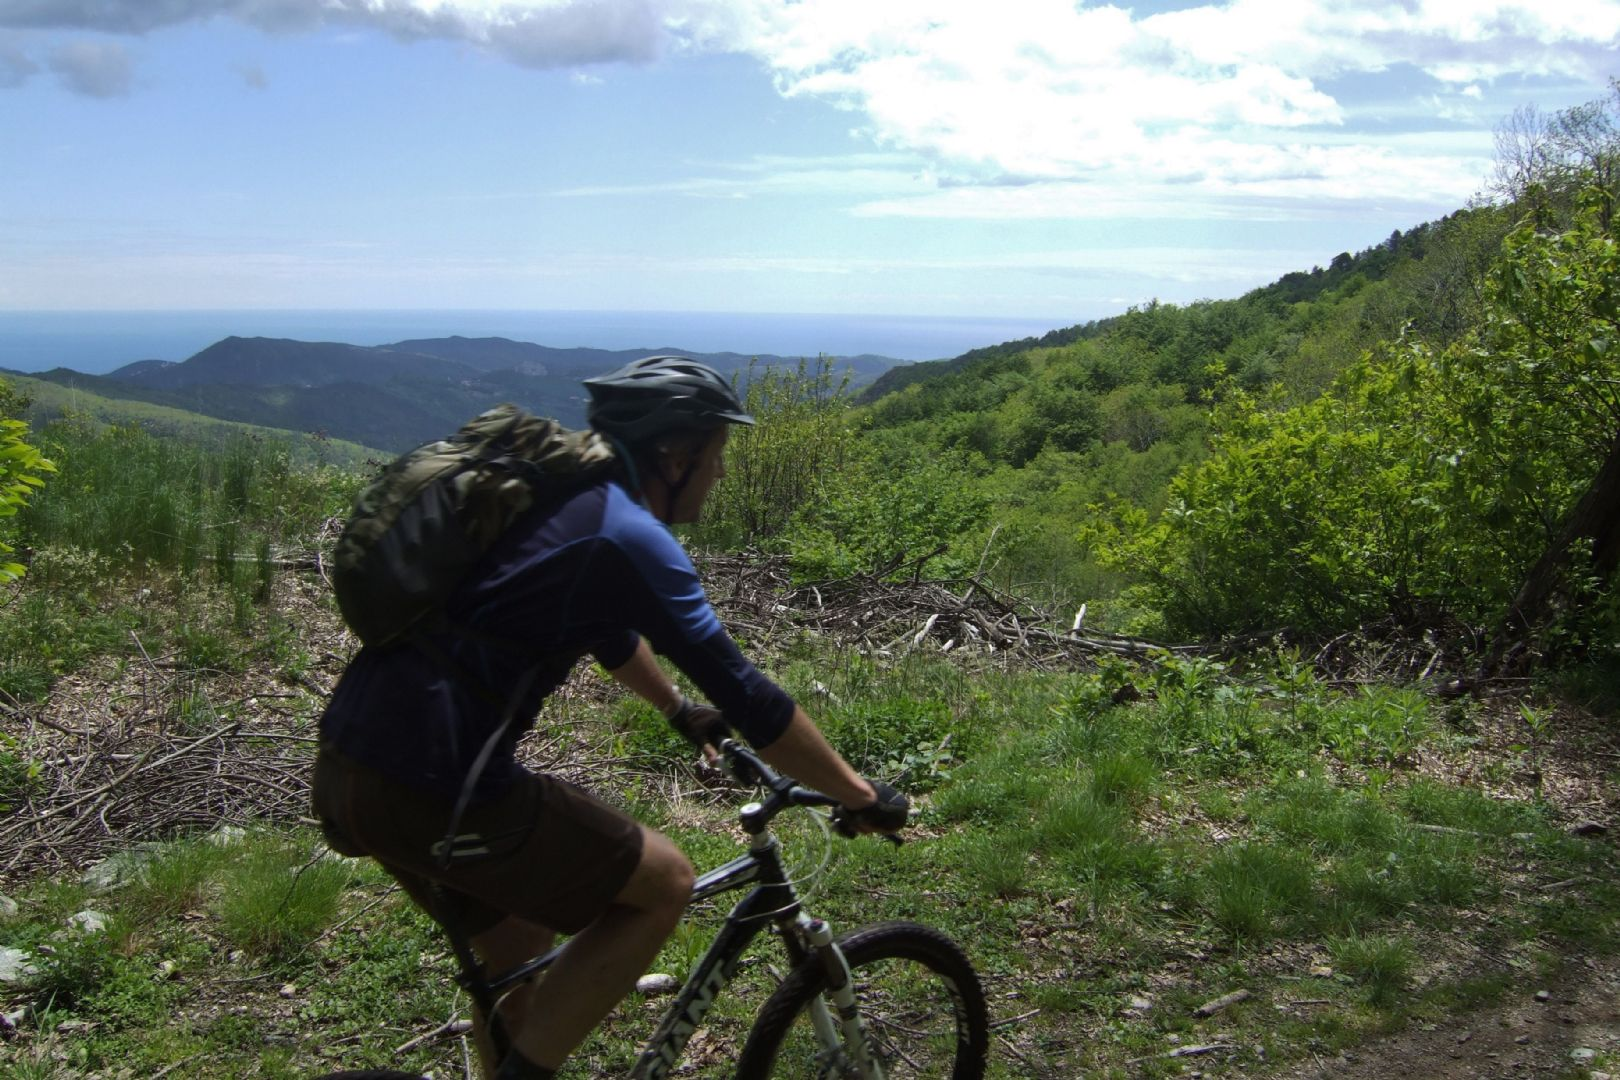 _Customer.23202.10837.jpg - Italy - Liguria - Riding the Riviera - Guided Mountain Bike Holiday - Italia Mountain Biking